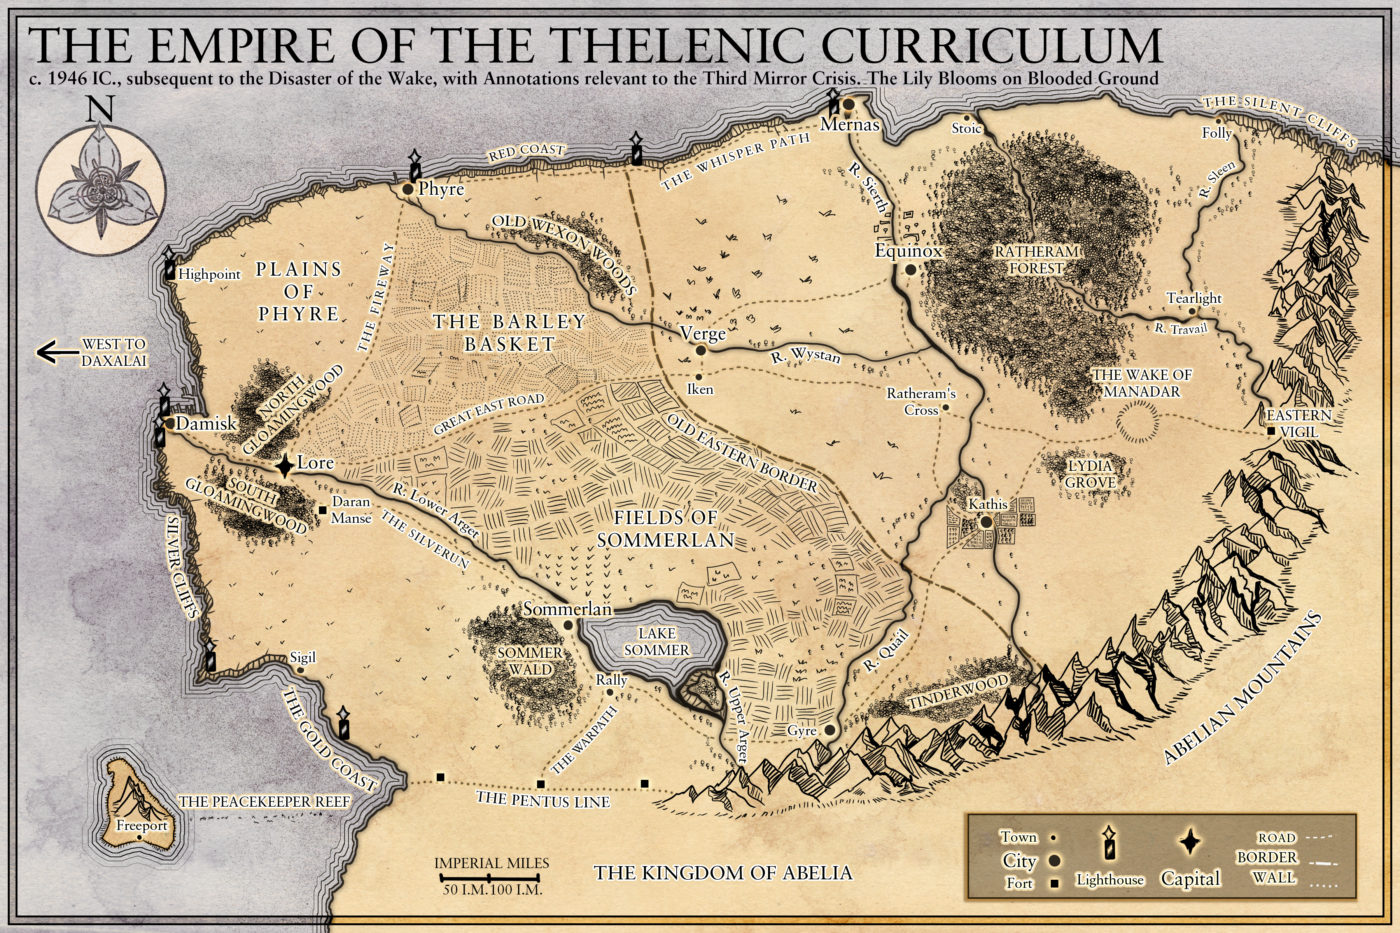 Map for an upcoming book by Author Tim Peers